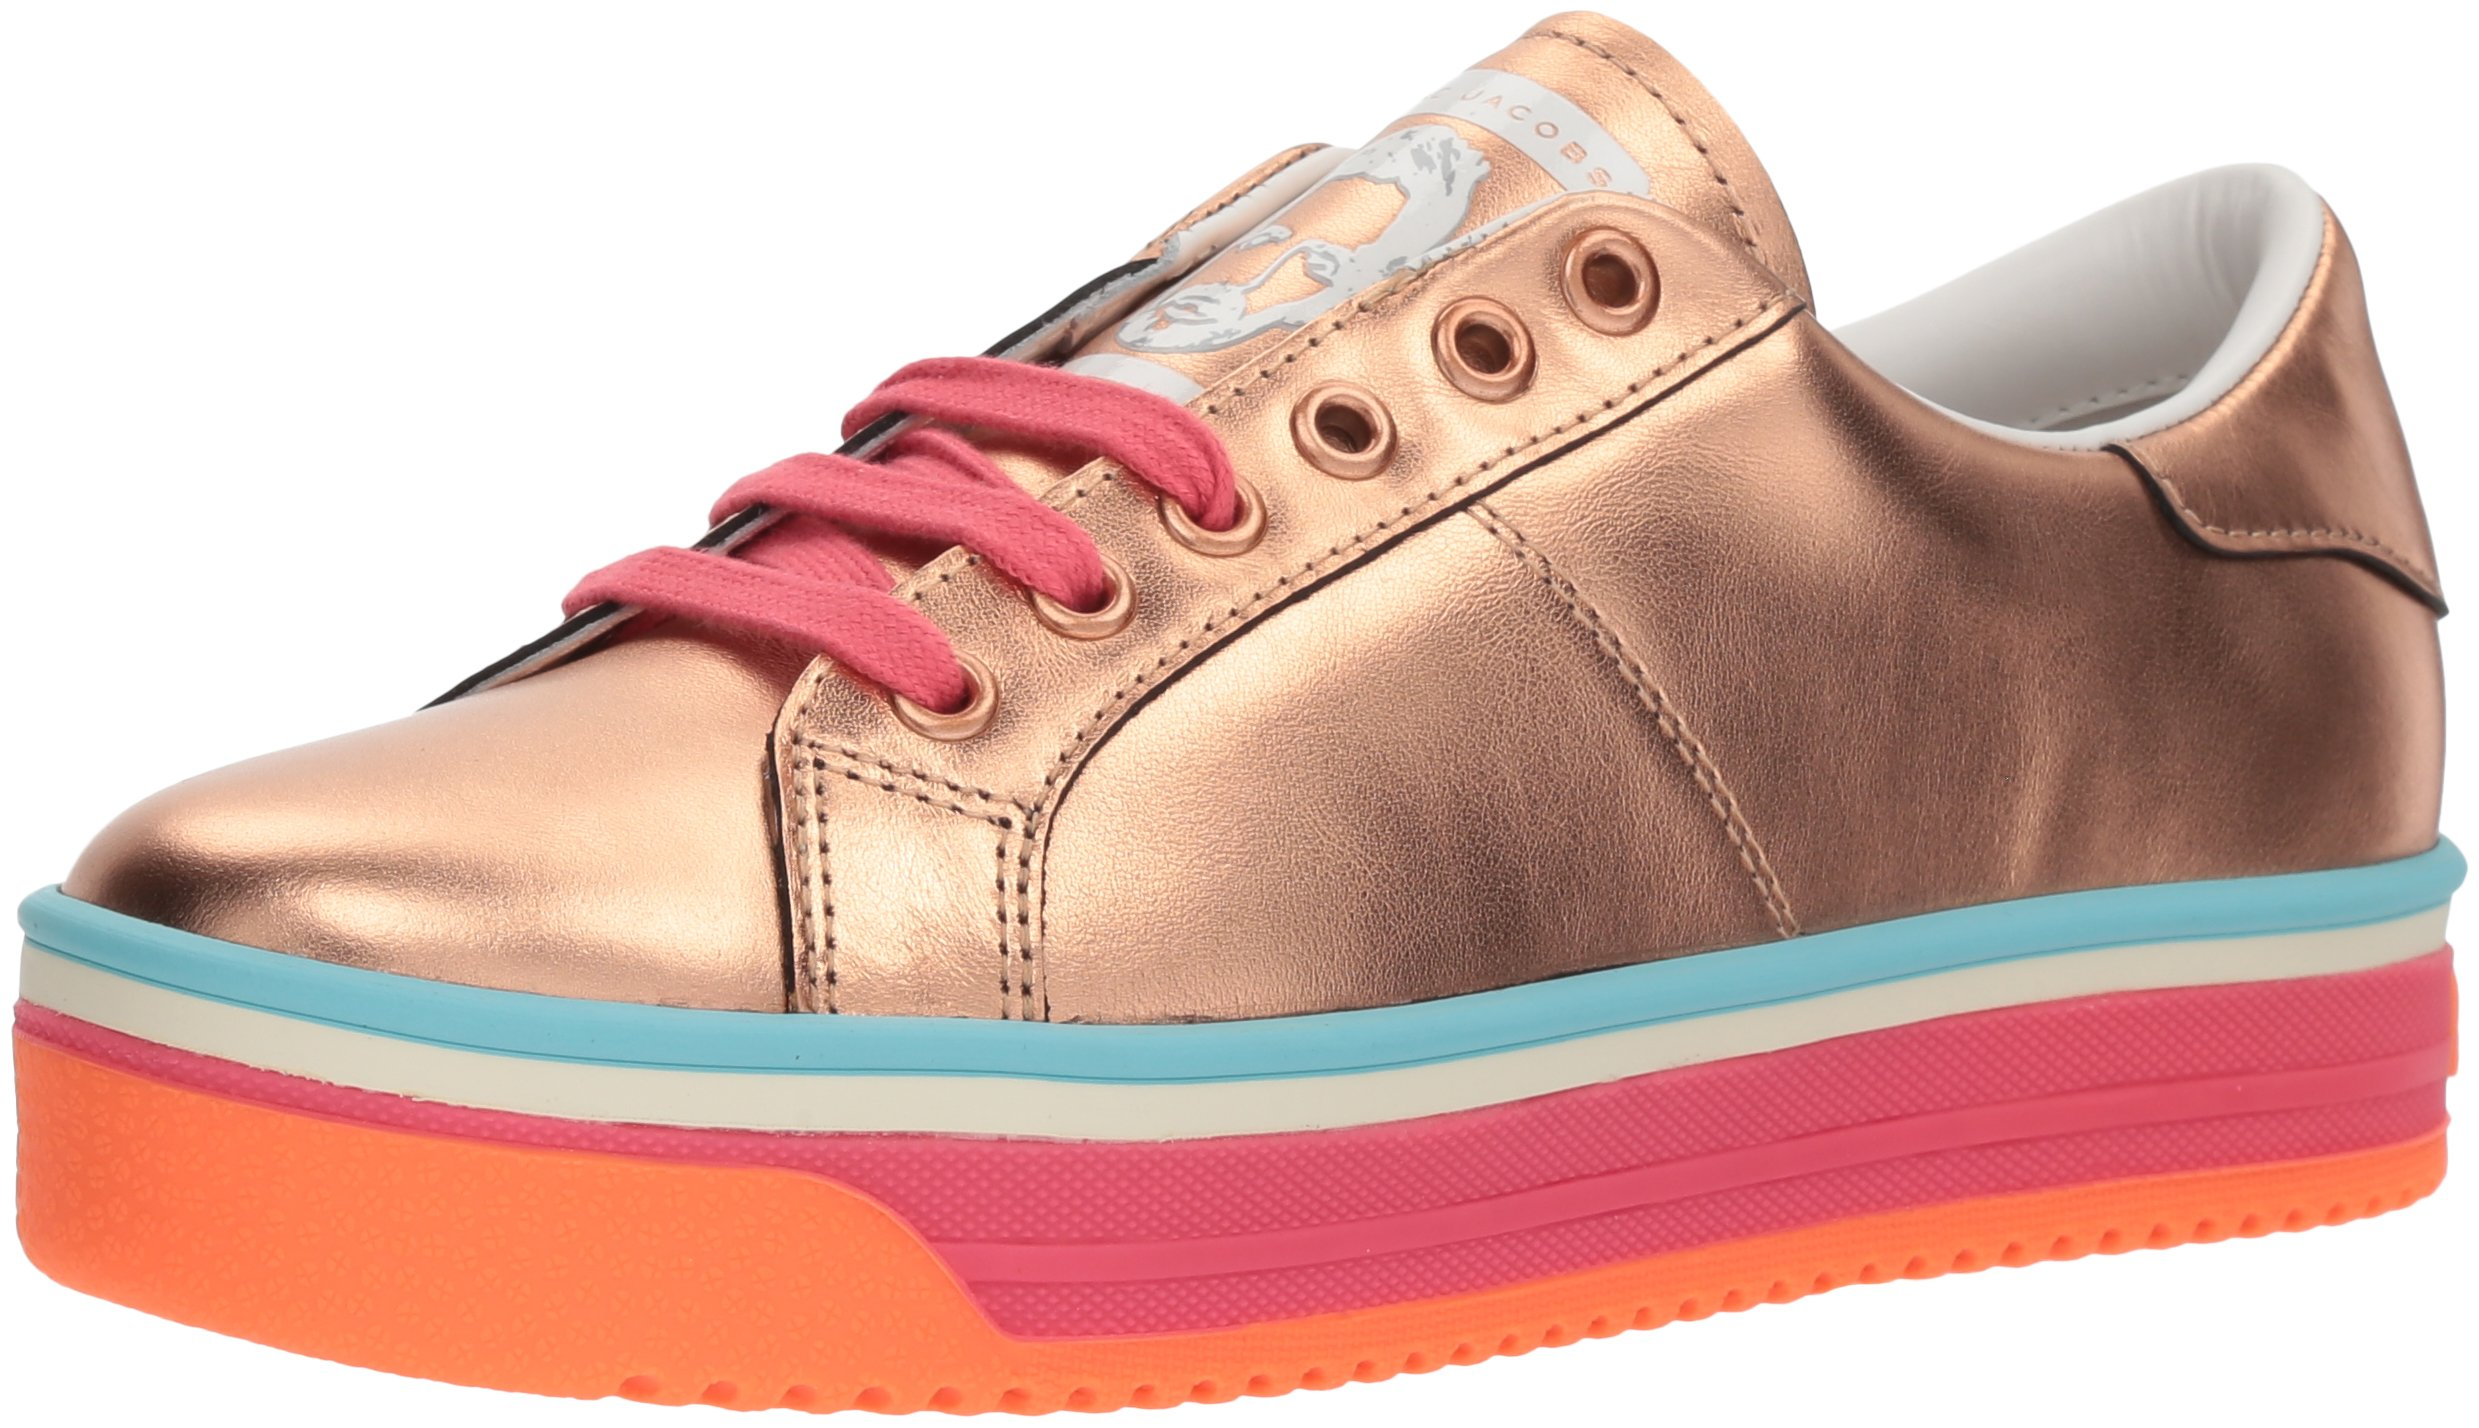 Marc Jacobs Women's Empire Multi Color Sole Sneaker, Rose Gold/Hot Pink/Multi, 37 M EU (7 US)